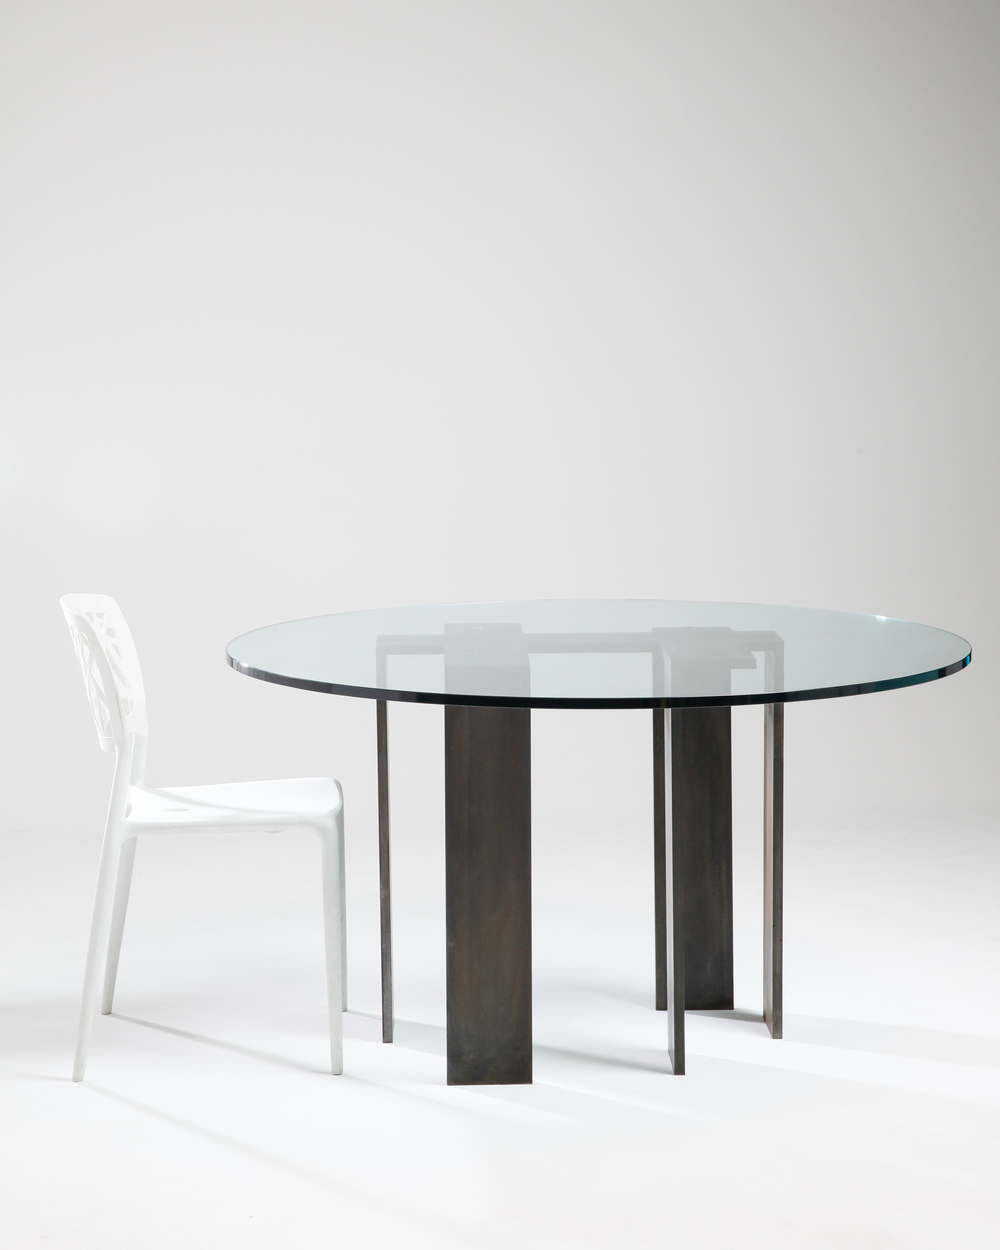 GLASS_TABLE-1720.jpg